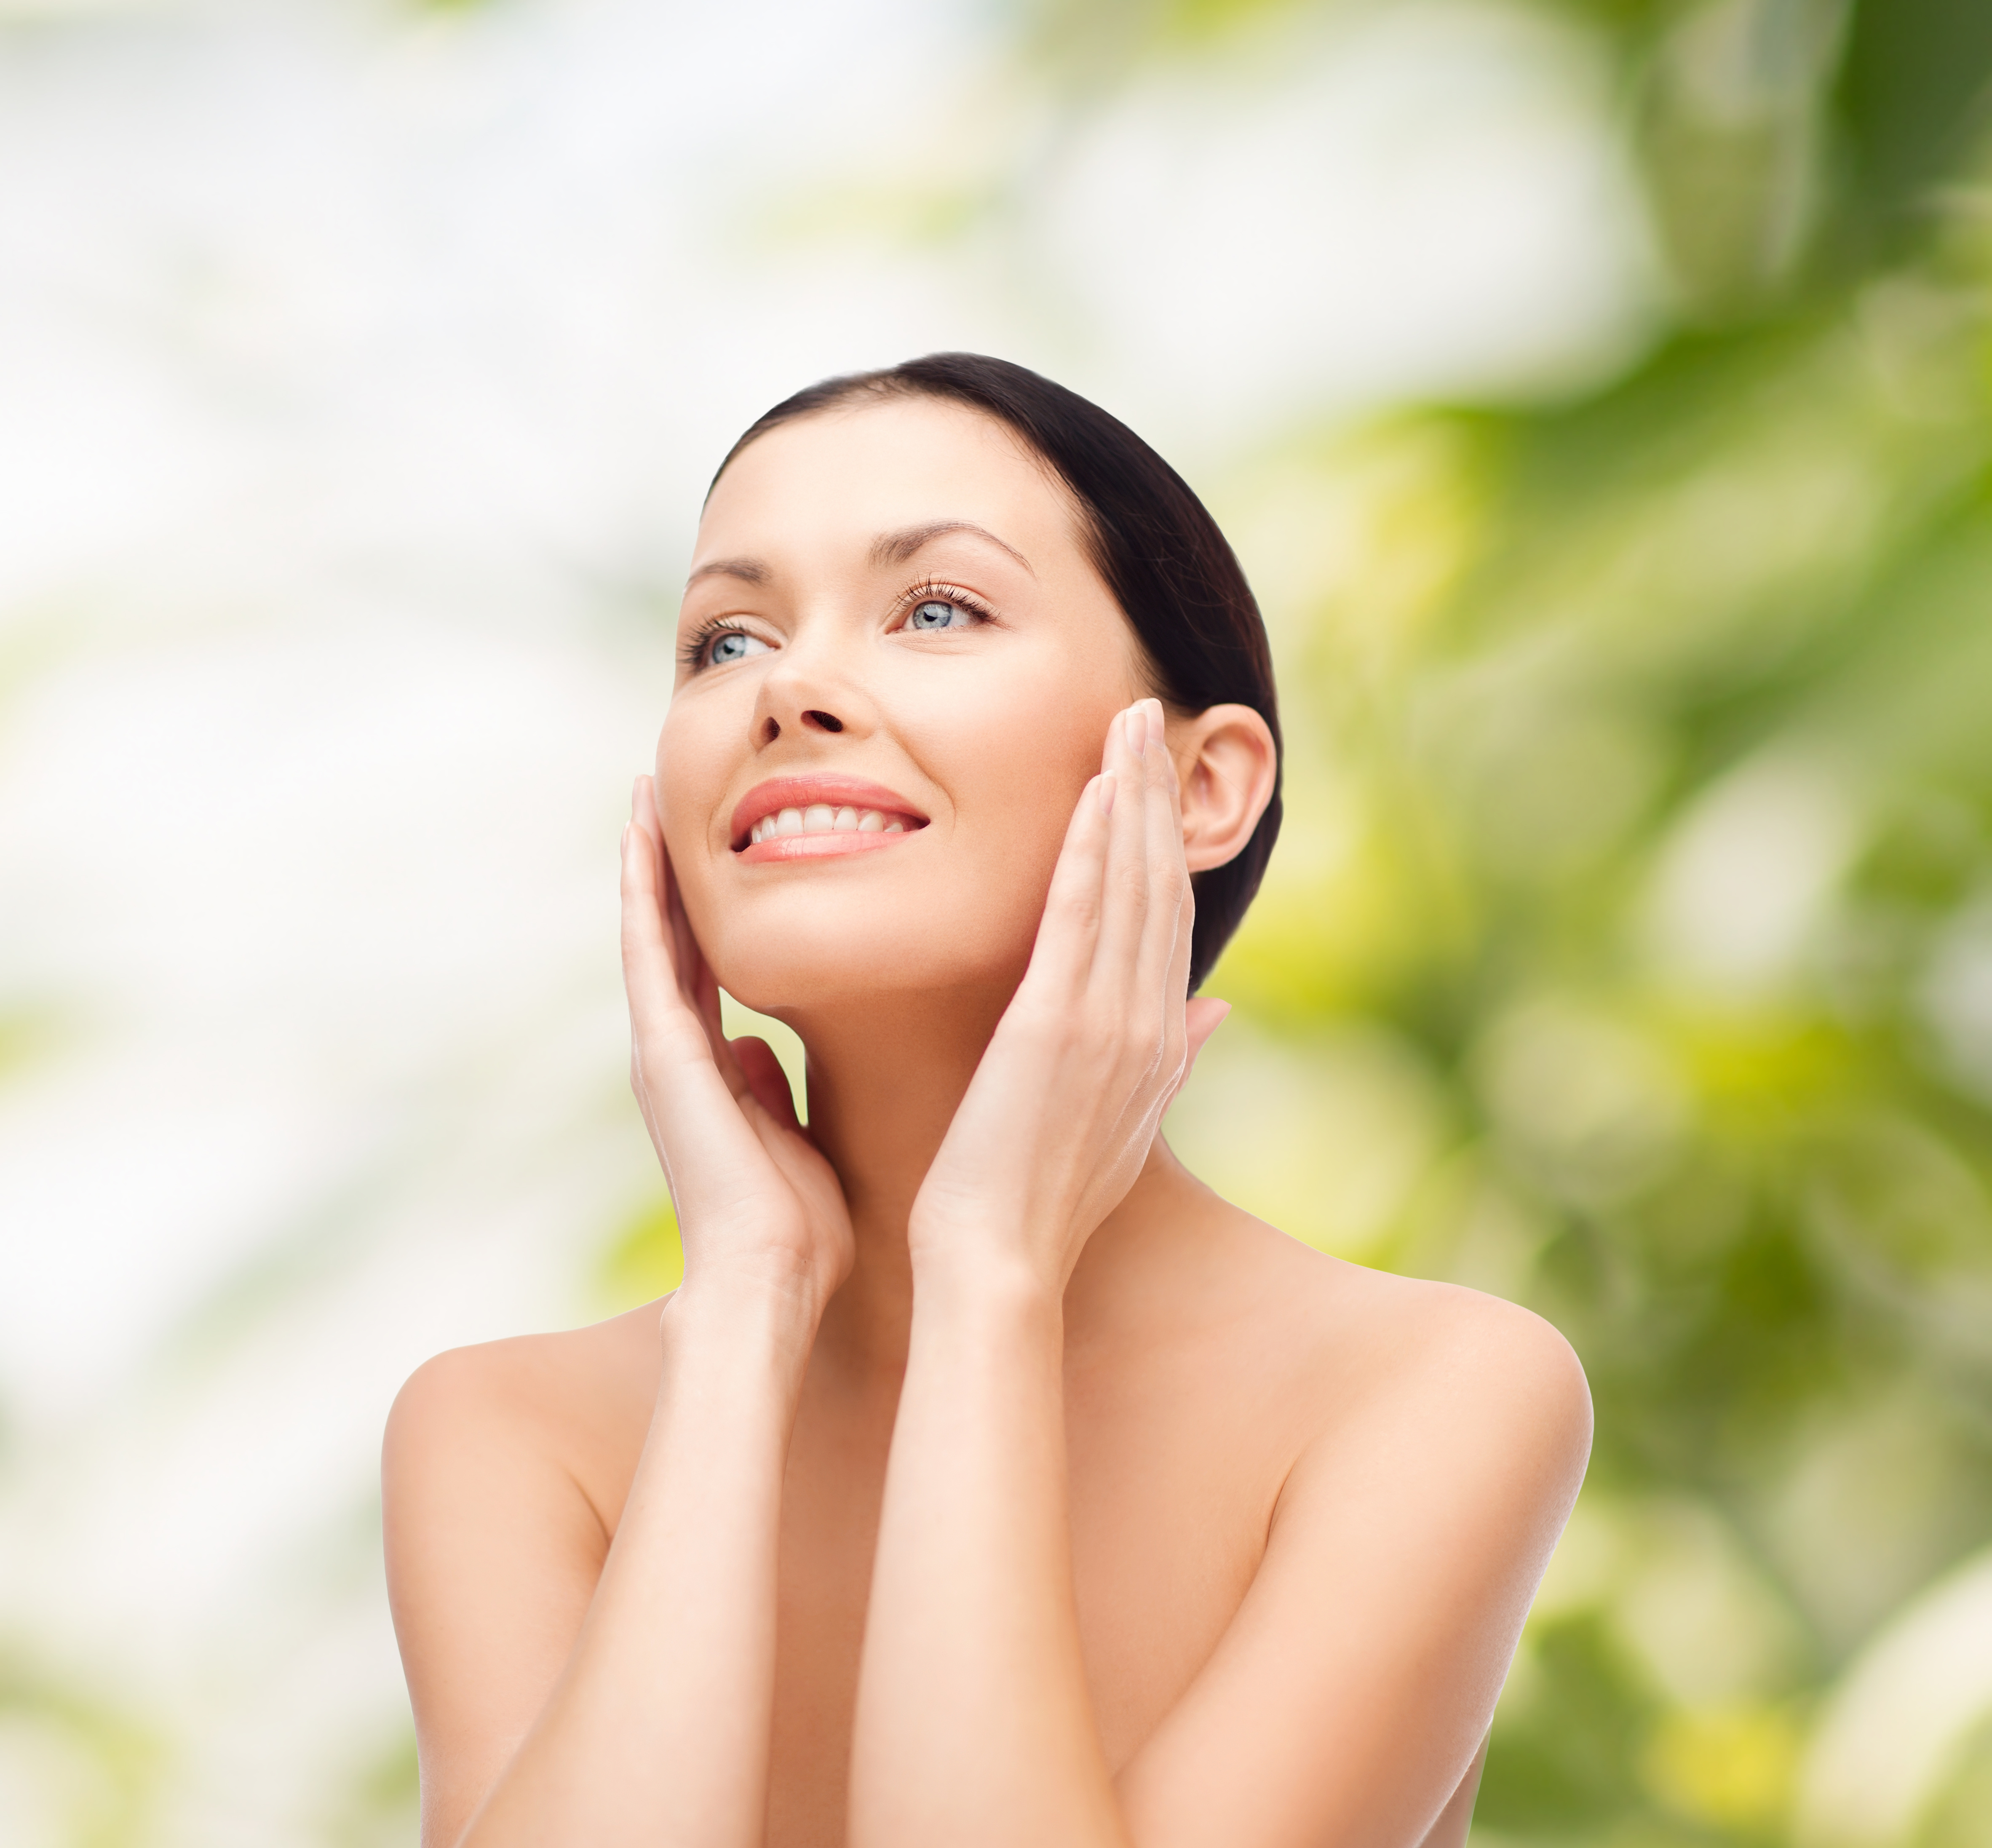 5 Tips to Help You Recover from Winter Skin